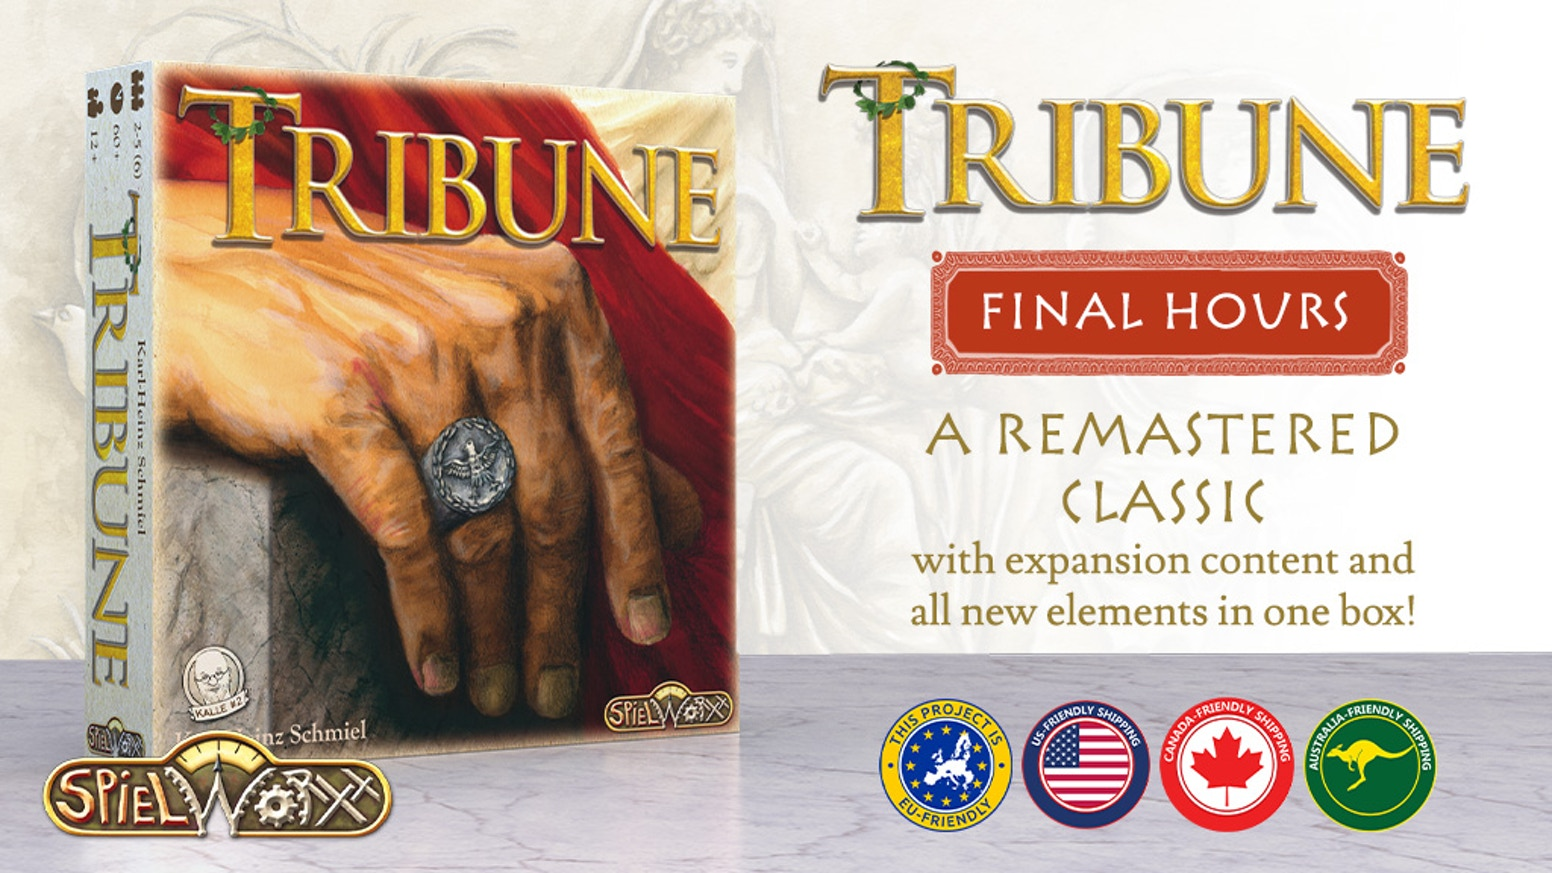 Tribune: Primus Inter Pares & Expansion with new mechanisms & features!